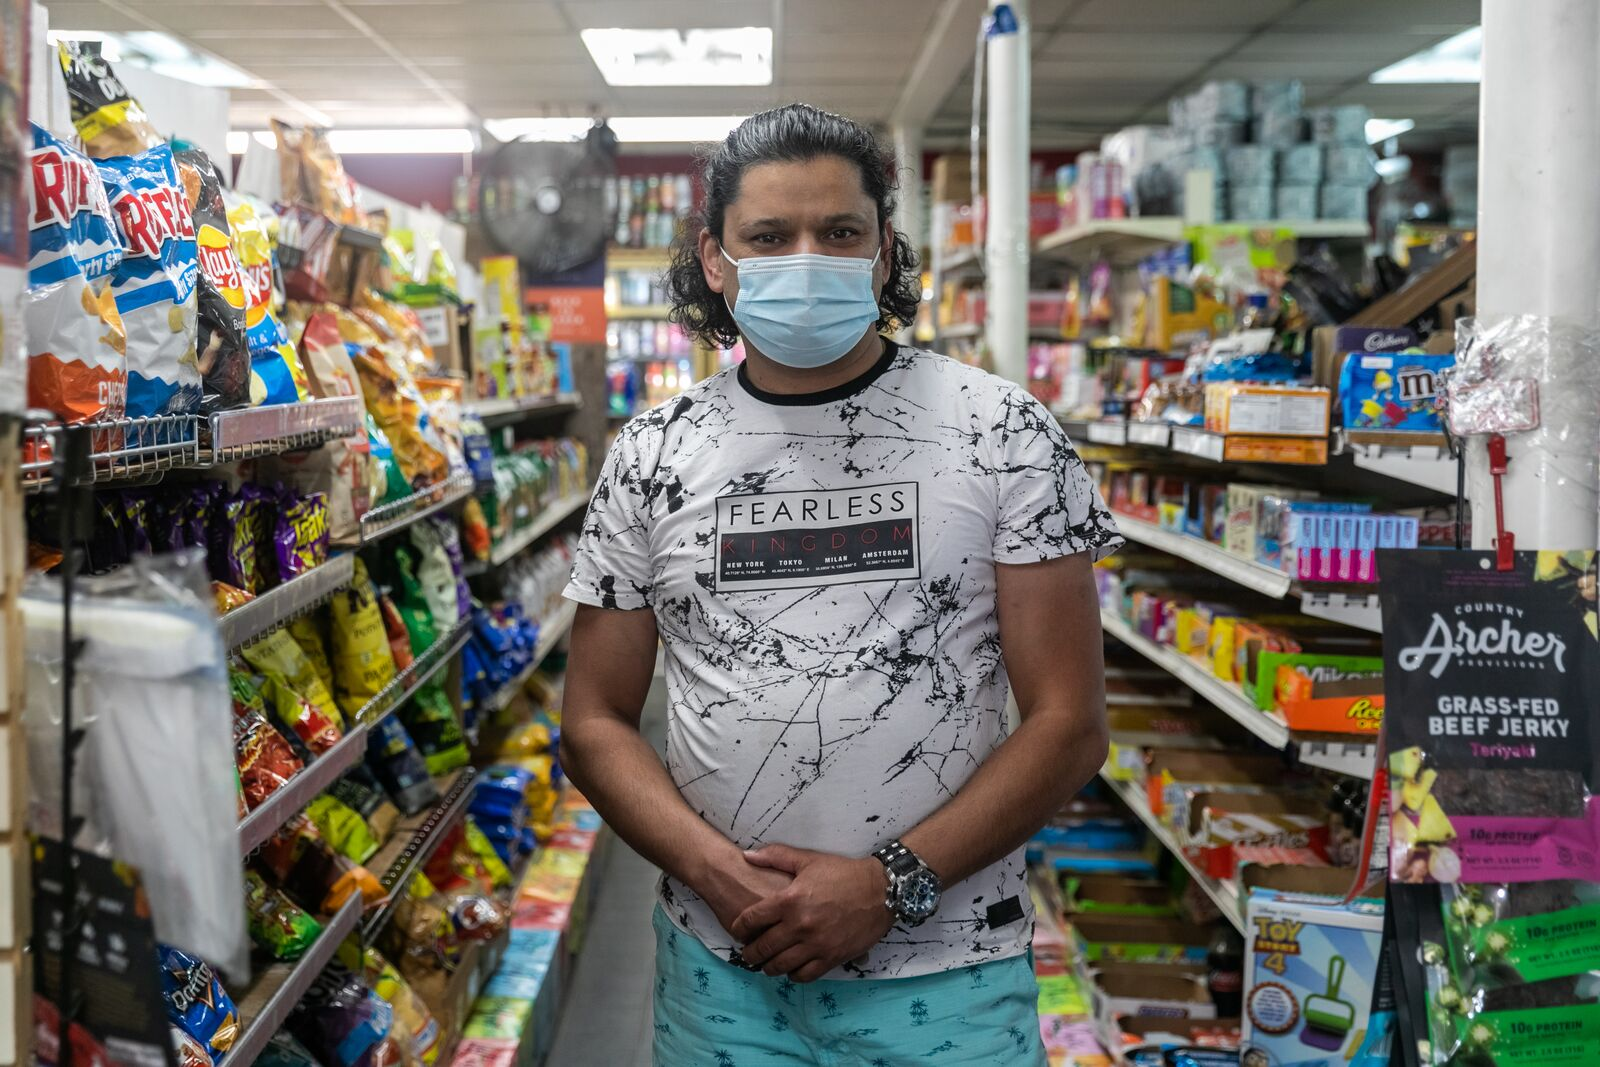 Vikas Aggarwal, owner of the Good 2 Go convenience store on Martin Luther King Jr. Blvd. is still requiring masks for staff at least through the end of the month, but customers are on the honor system if they come in unmasked. Credit: Kelly Sullivan